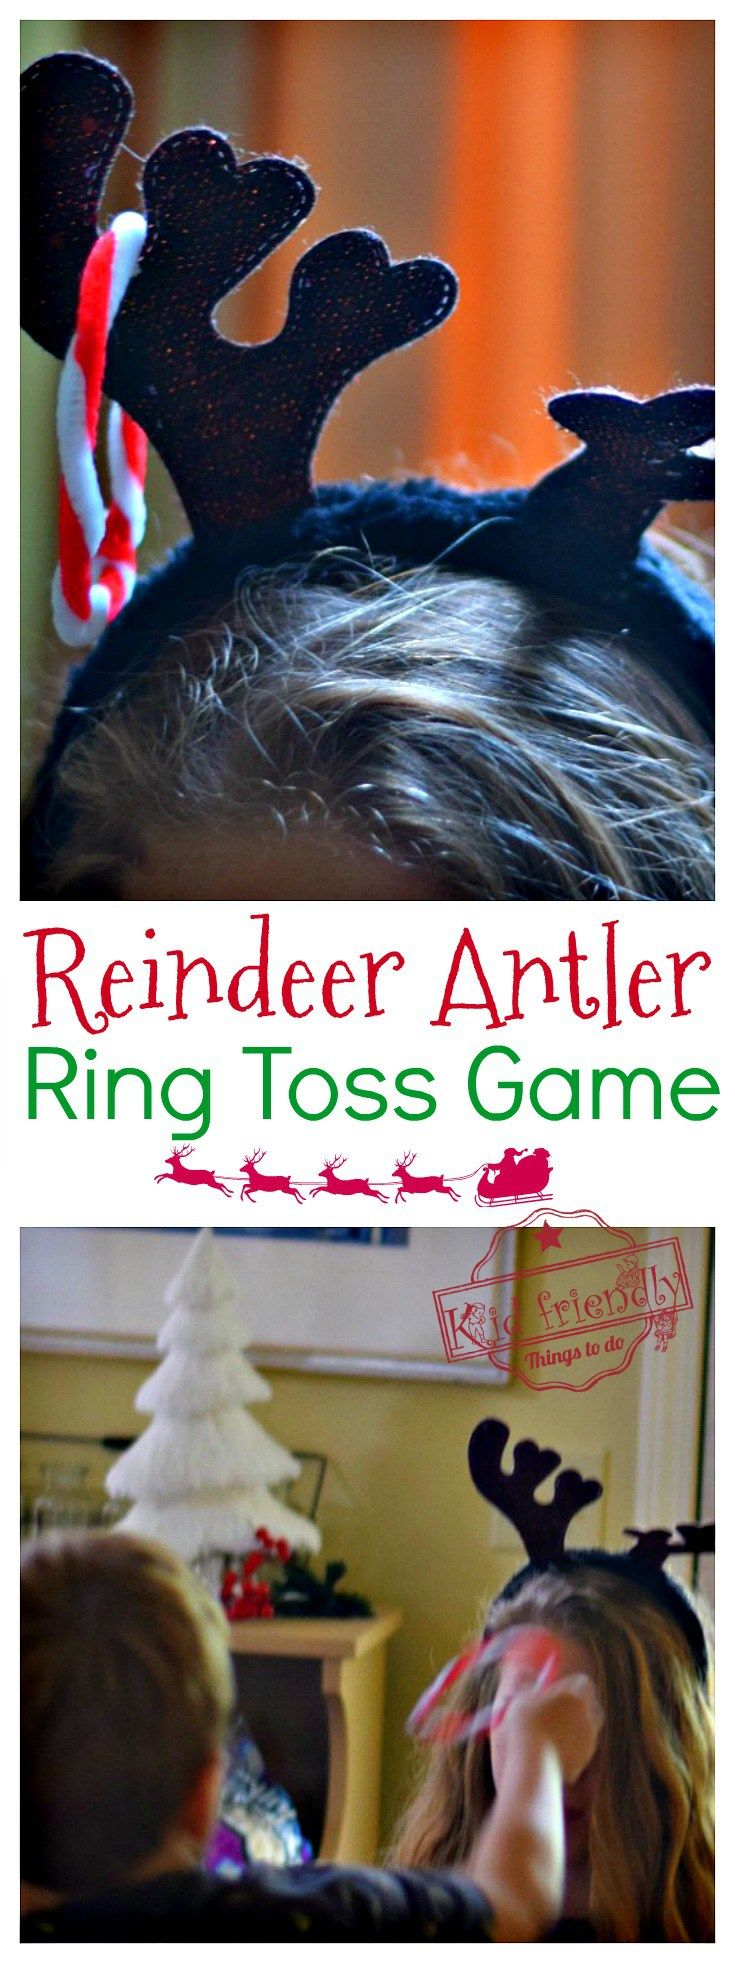 Ring the Reindeer Antlers – Human Ring Toss Game for Christmas Fun with the Kids!